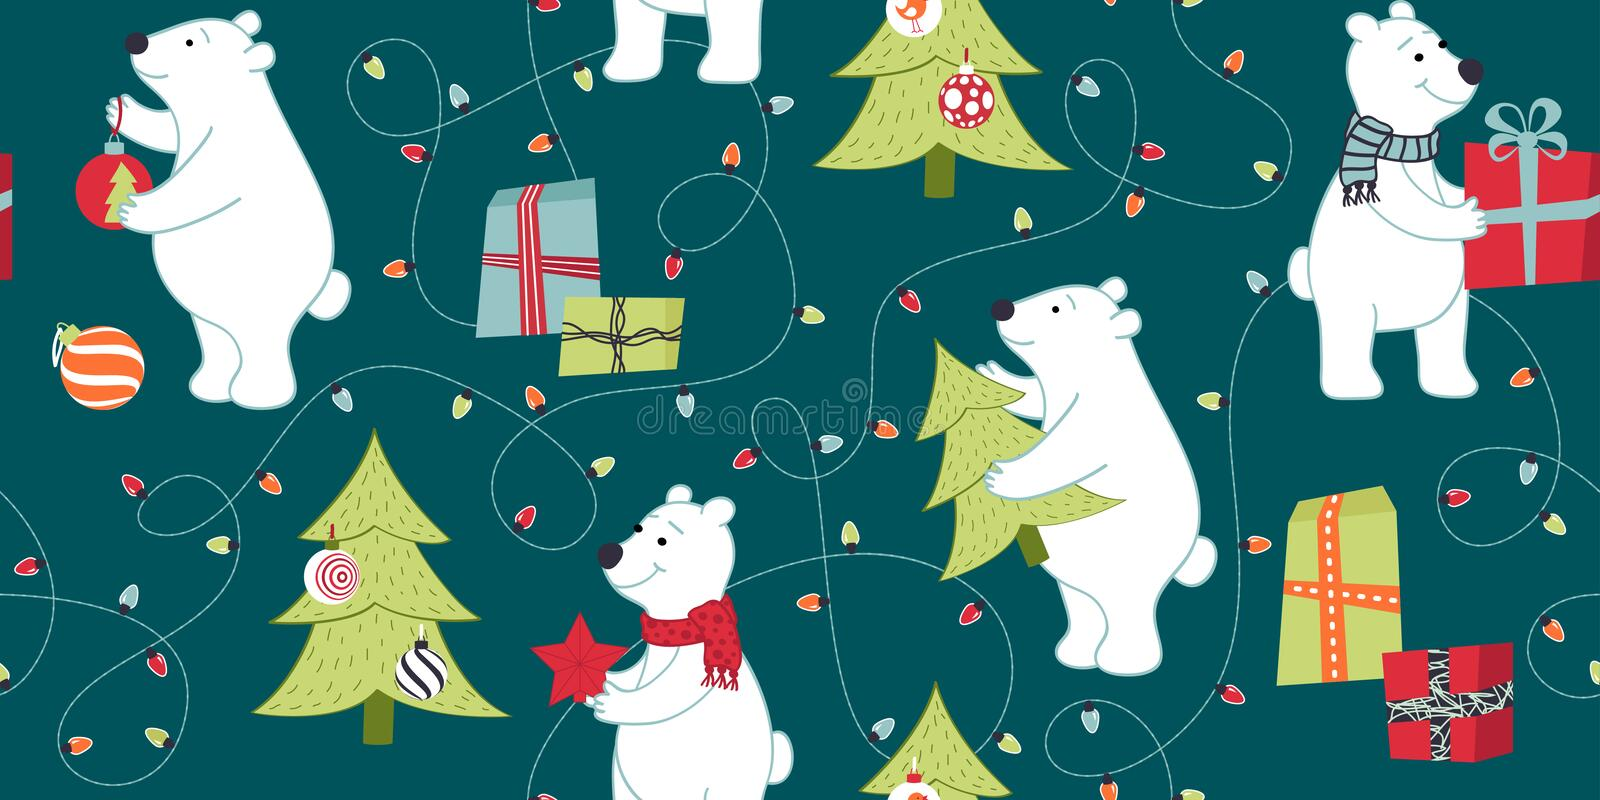 Bears are preparing for Christmas, preparing gifts, decorate the Christmas tree. royalty free illustration